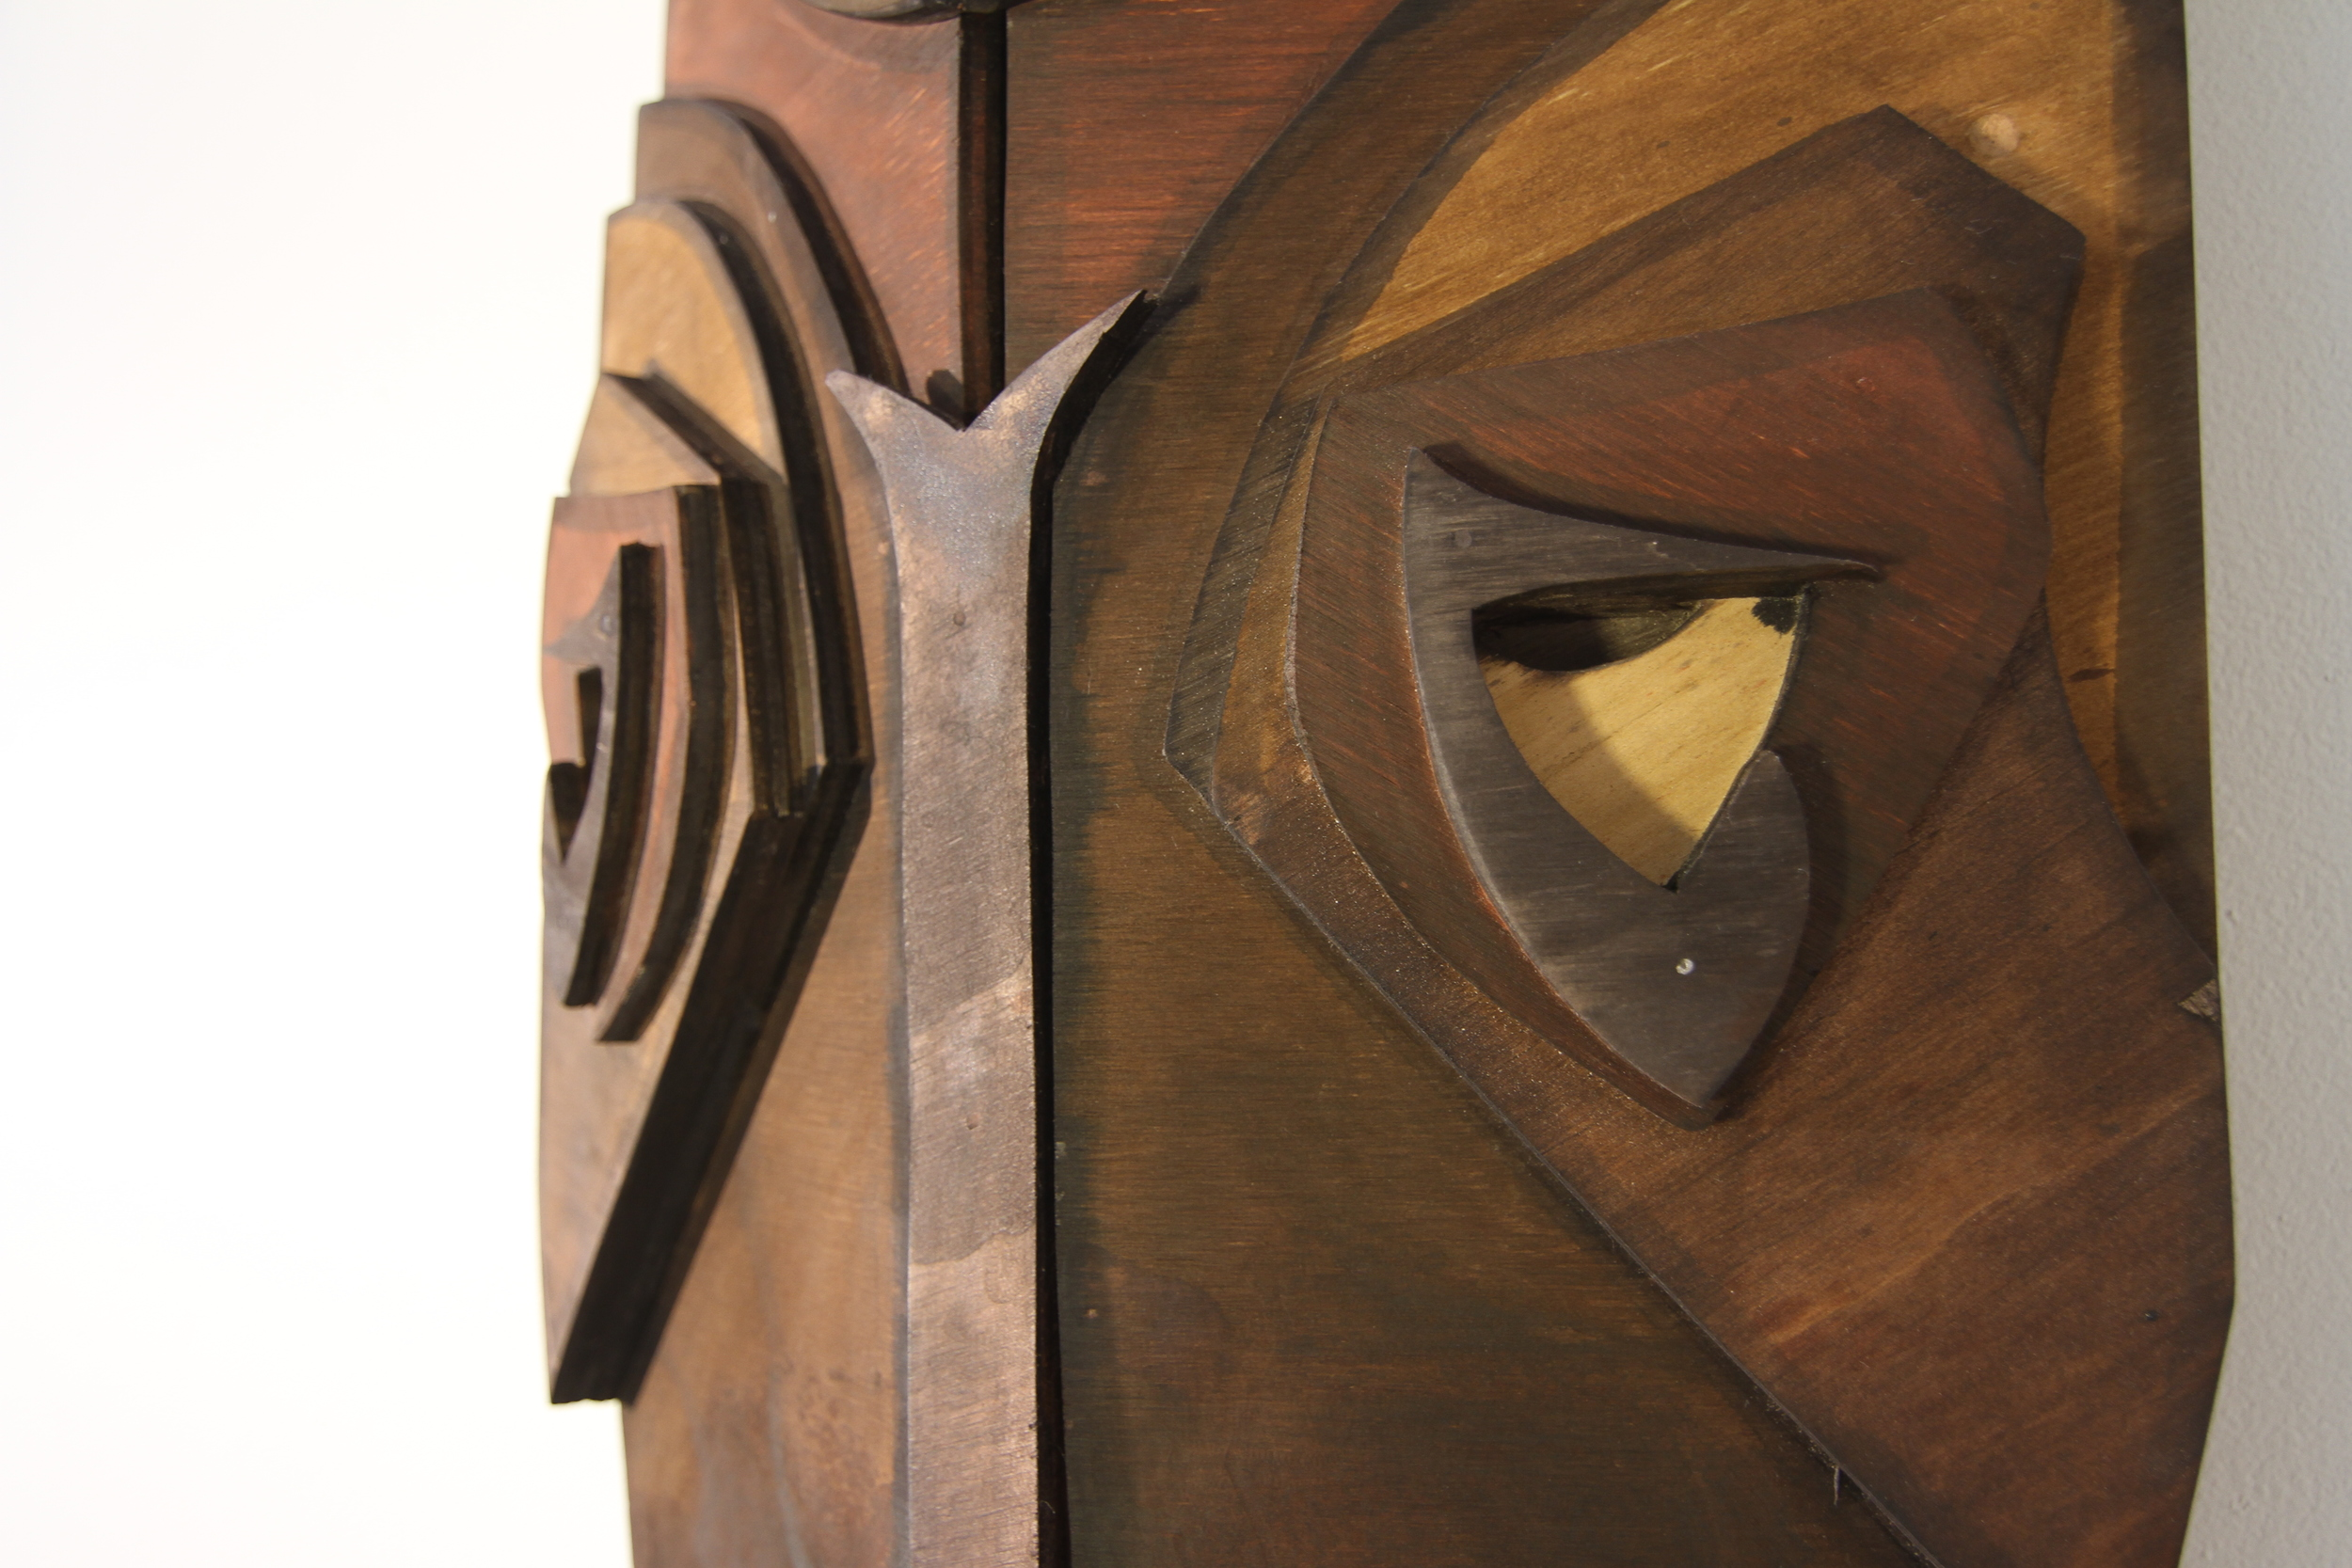 2012, Timber, found objects, LED, oil stain, 110x32x28cm, Private collection, Photograph by Michael Herman